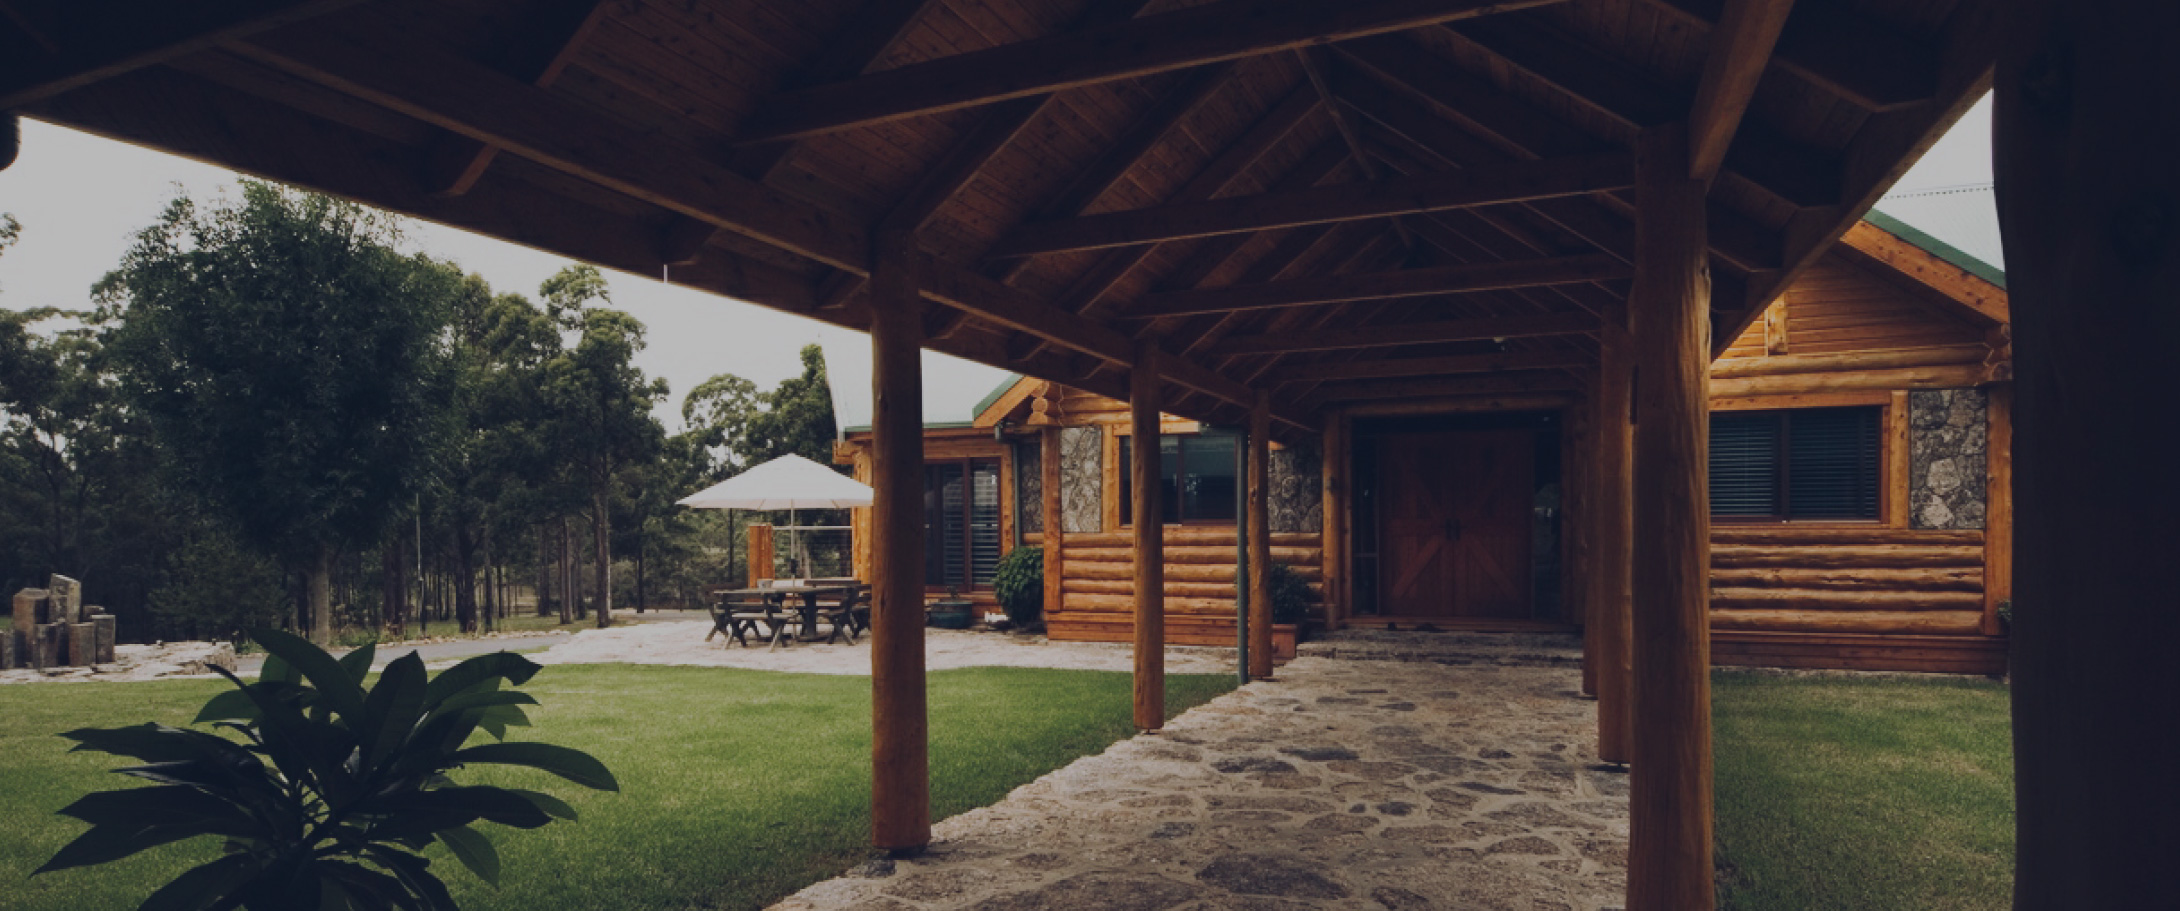 Log Cabin Homes Designs Australia Home Design And Style - Cabin home designs